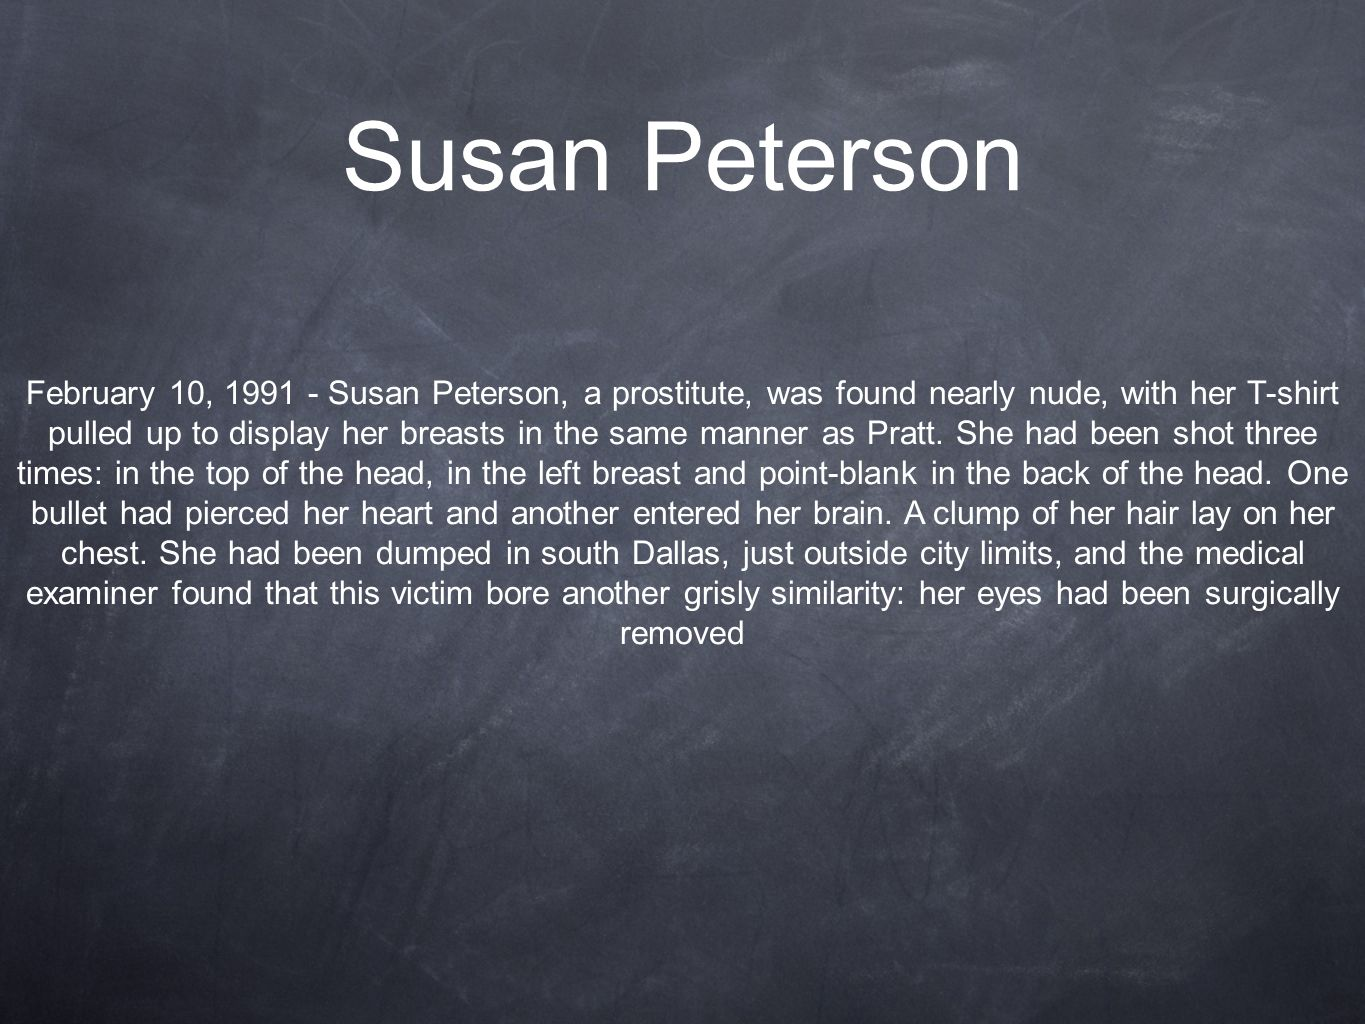 Susan Peterson February 10, 1991 - Susan Peterson, a prostitute, was found nearly nude, with her T-shirt pulled up to display her breasts in the same